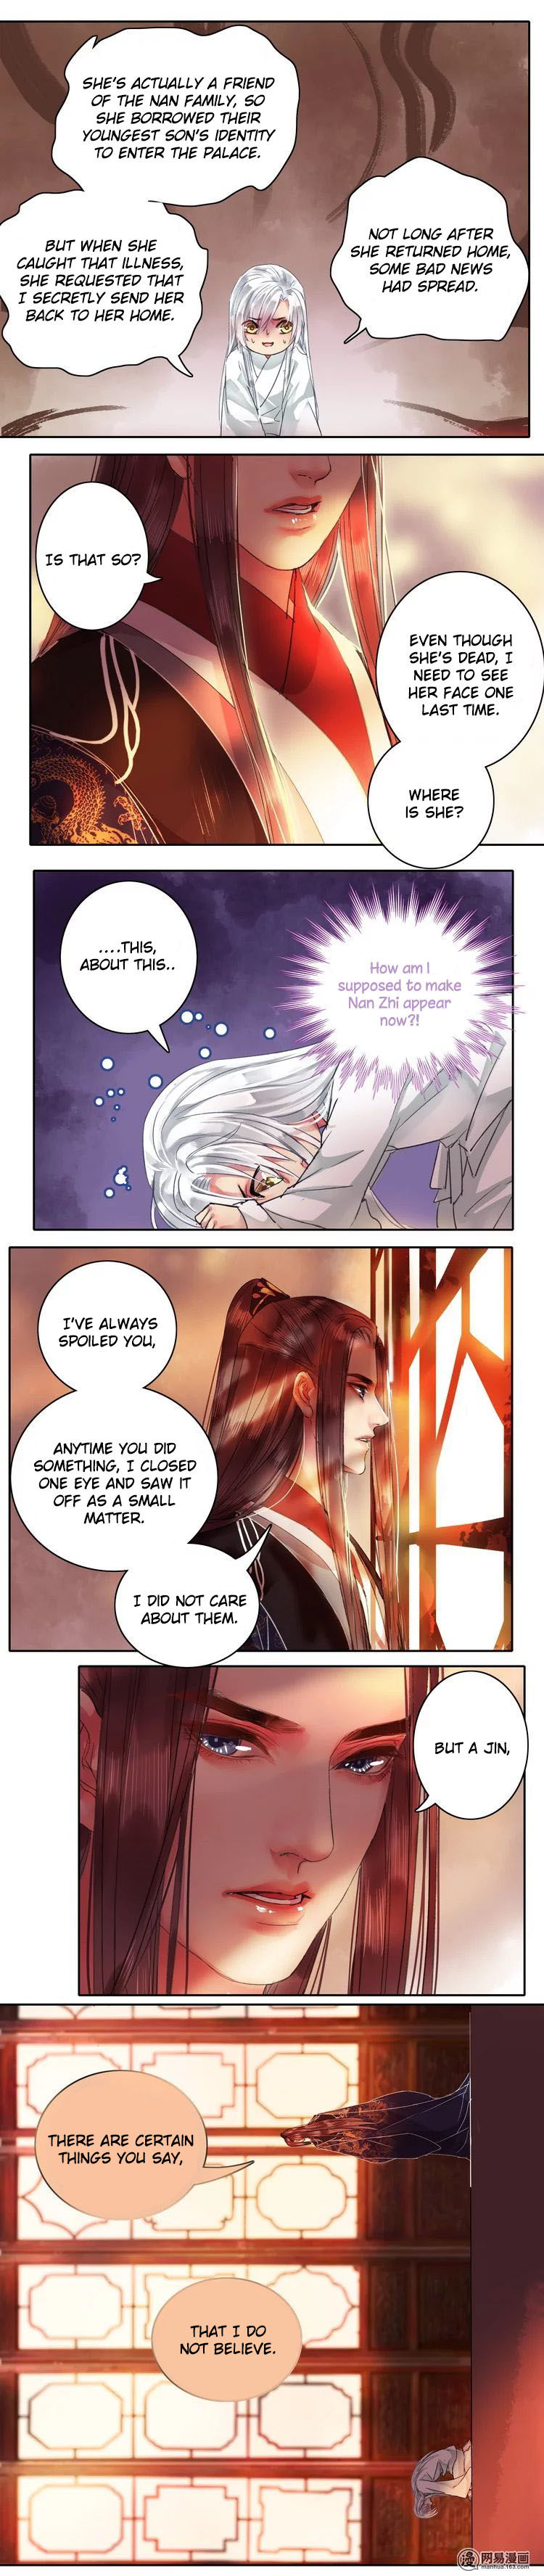 I'm A tyrant in his Majesty's Harem 54 Page 1